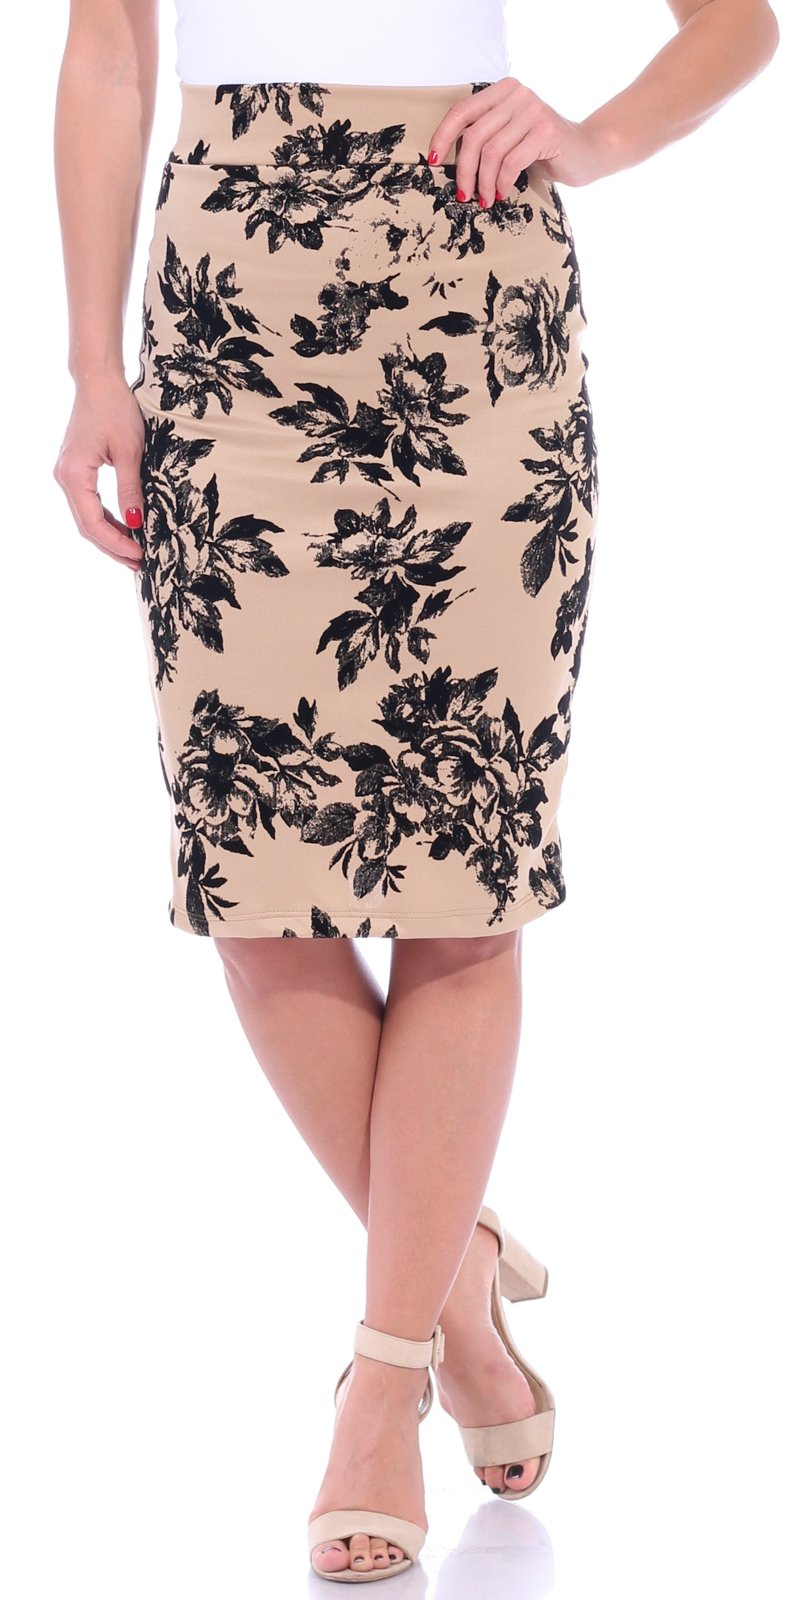 Popana Women's Stretch Pencil Skirt Knee Length High Waist for Work Made in USA Large Cream